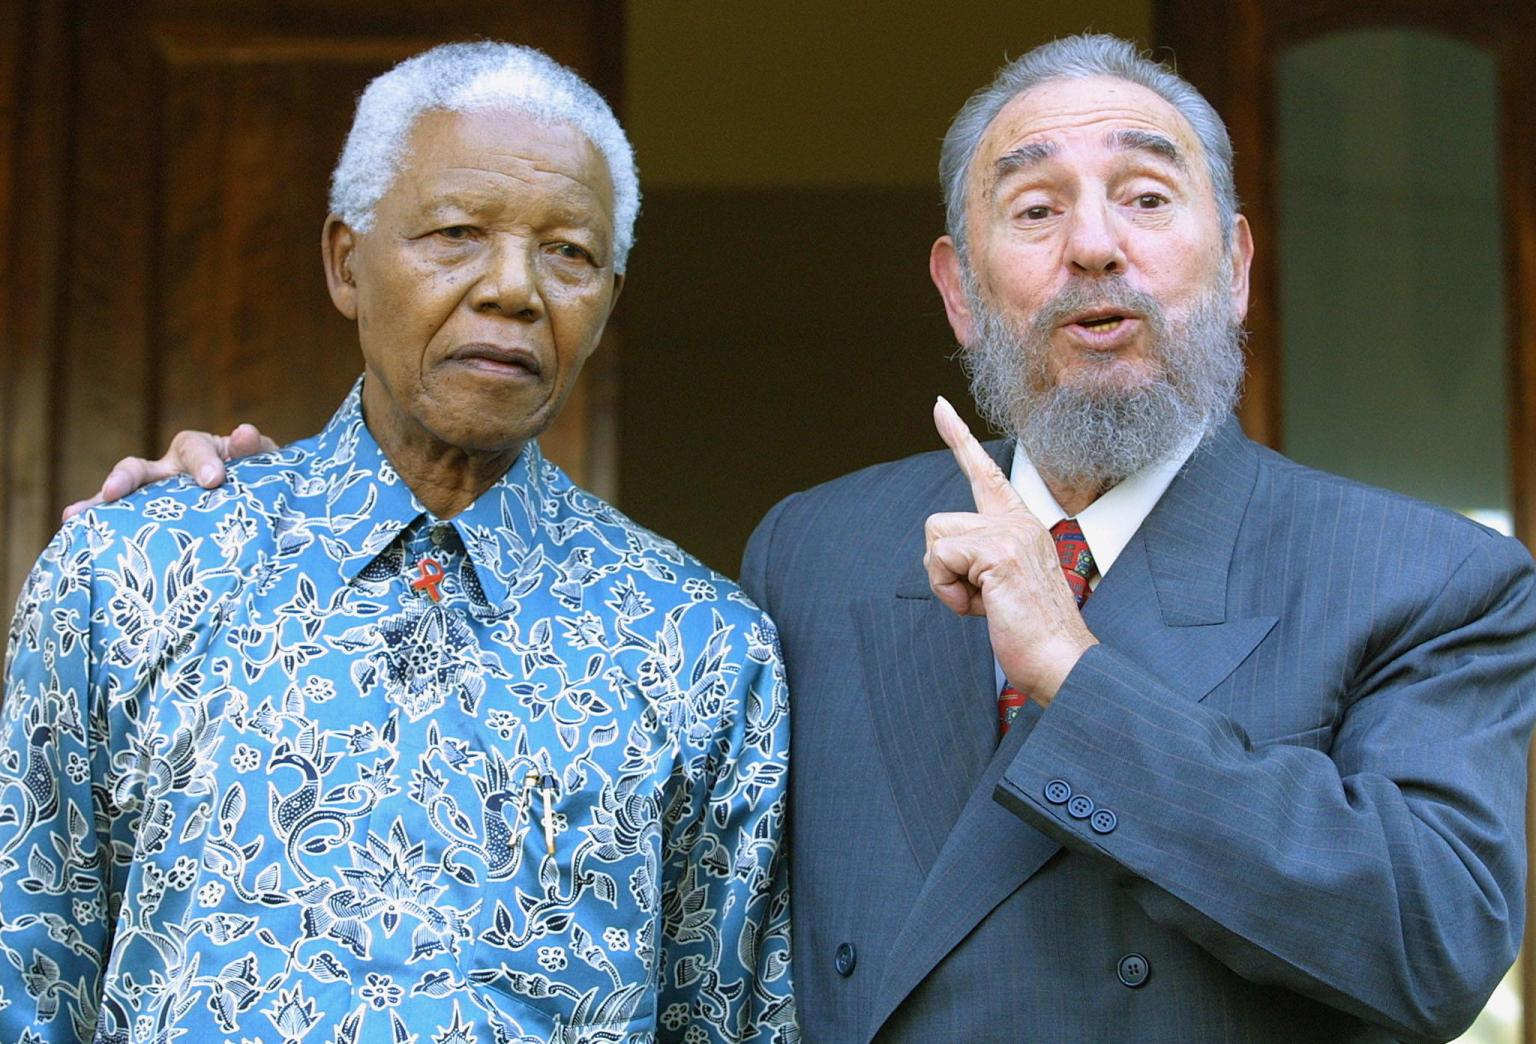 the last honorable man standing fidel castro is no more n